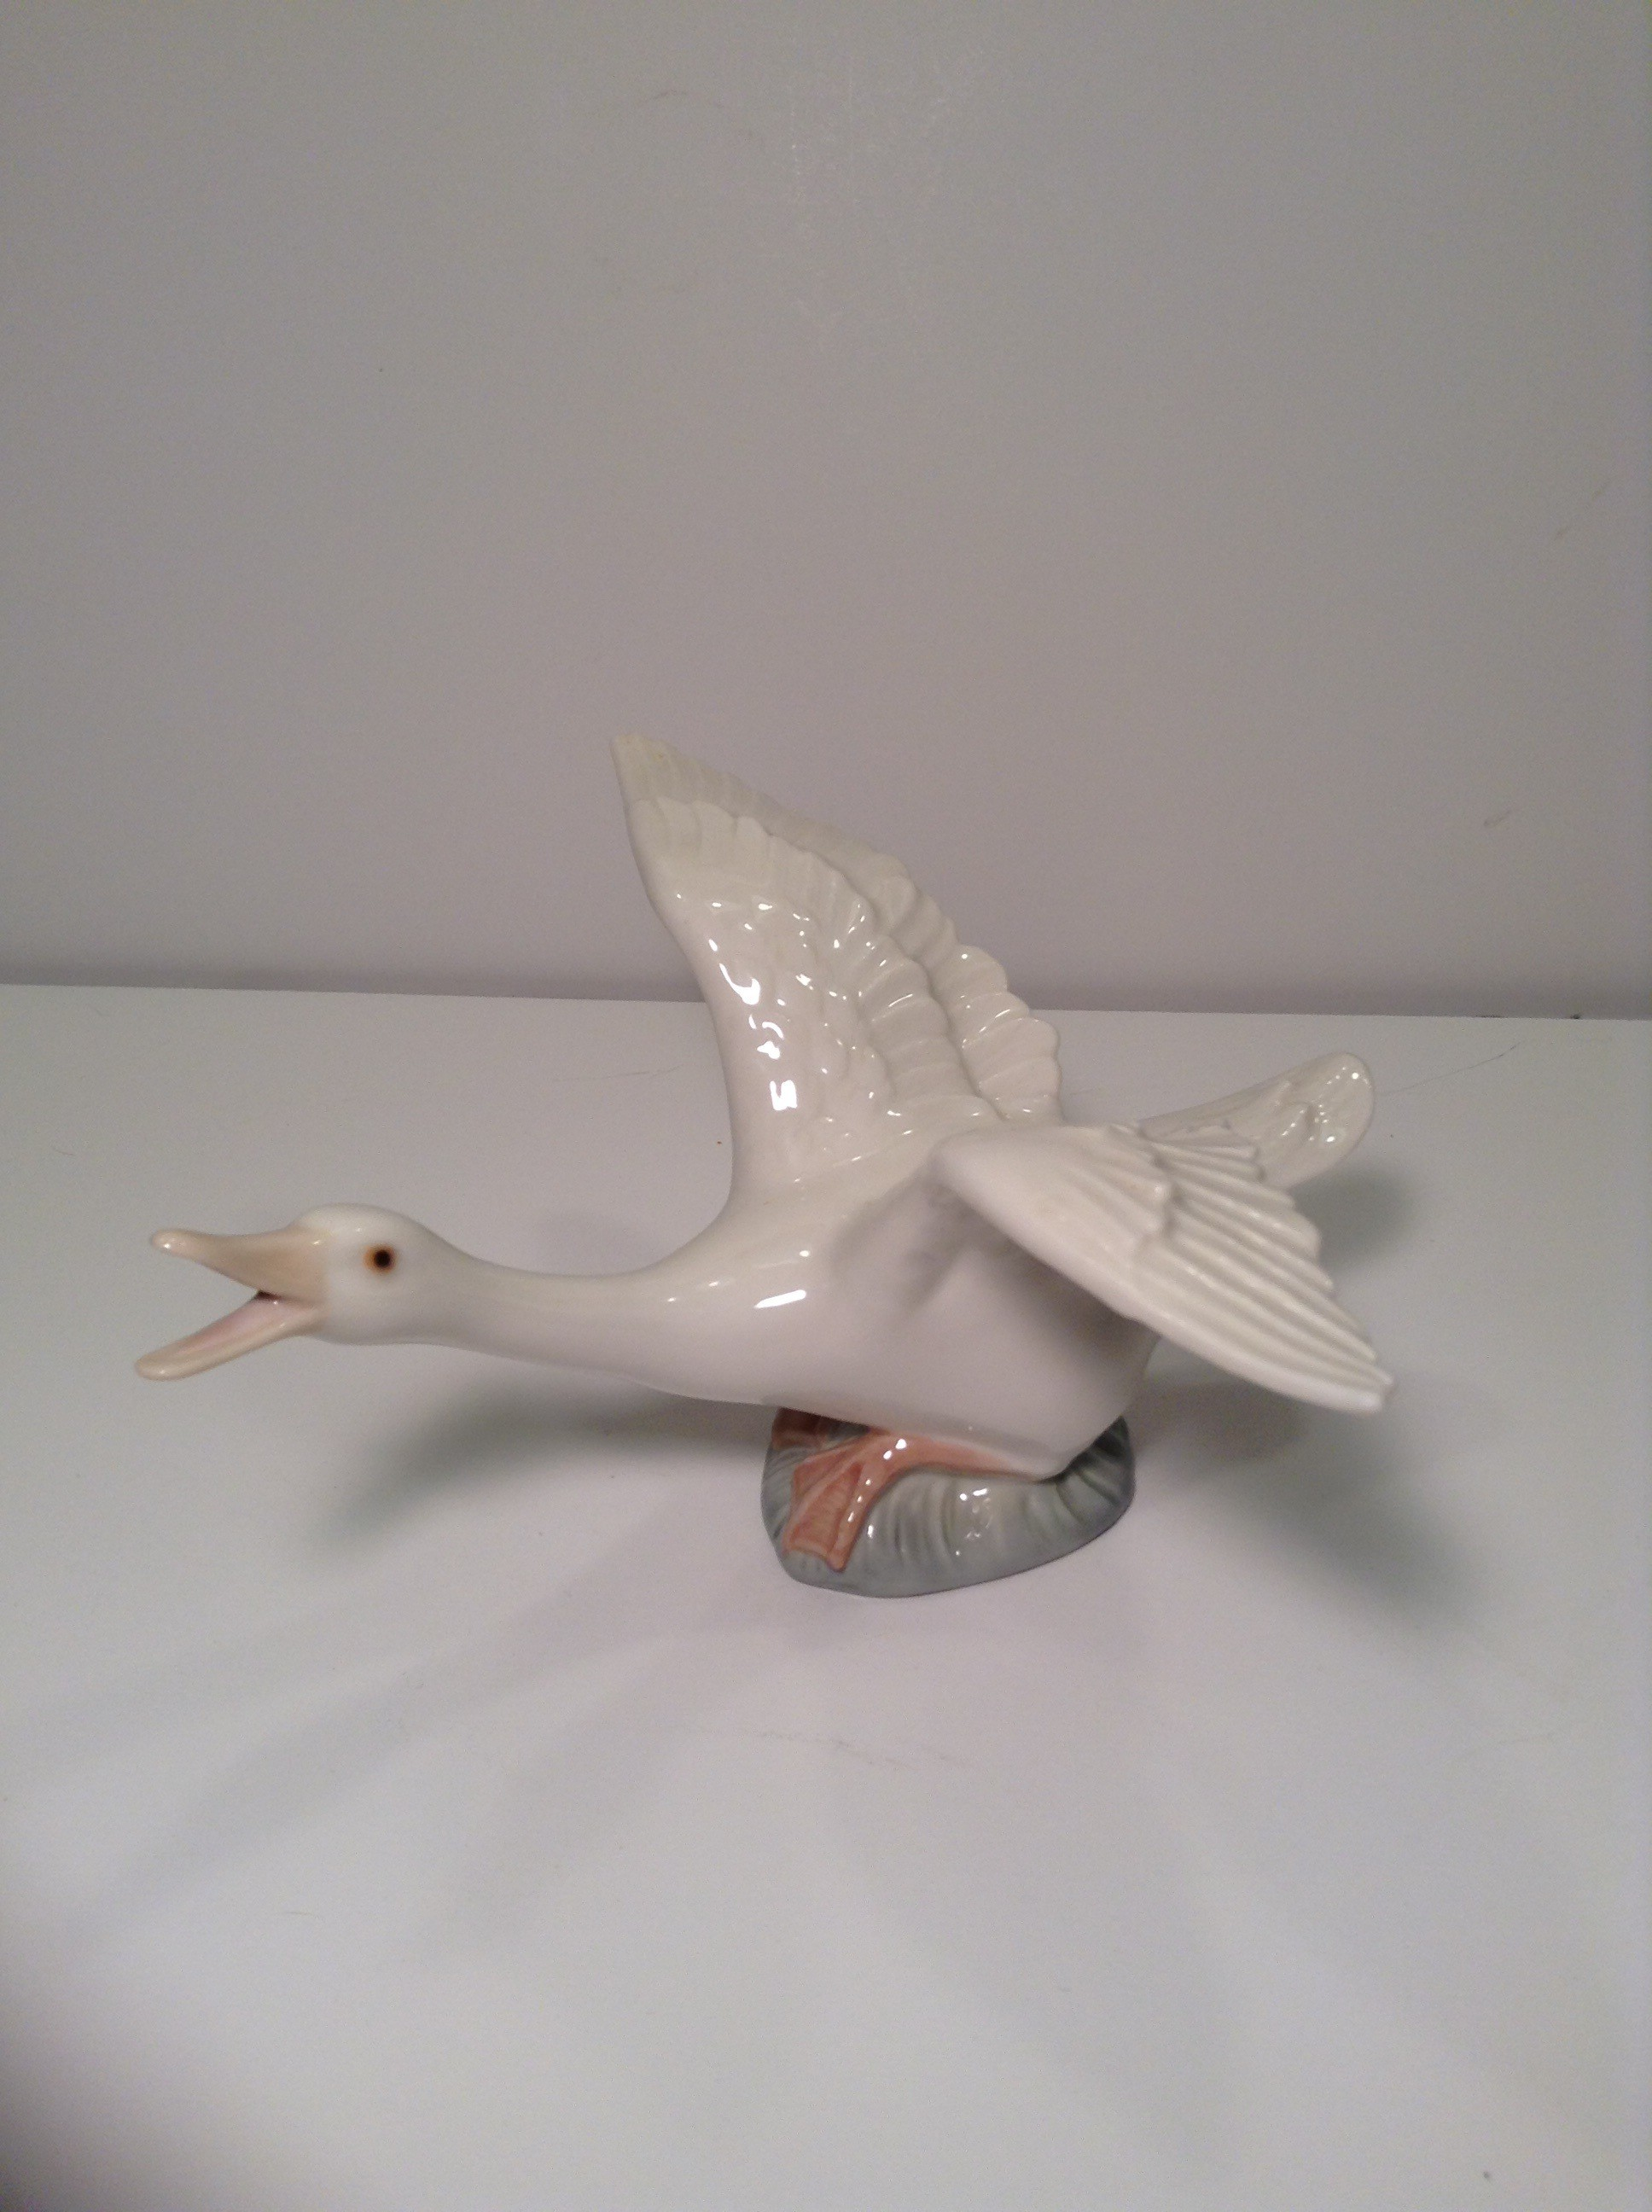 Lladro Flying Duck #1264 Retired Figurine